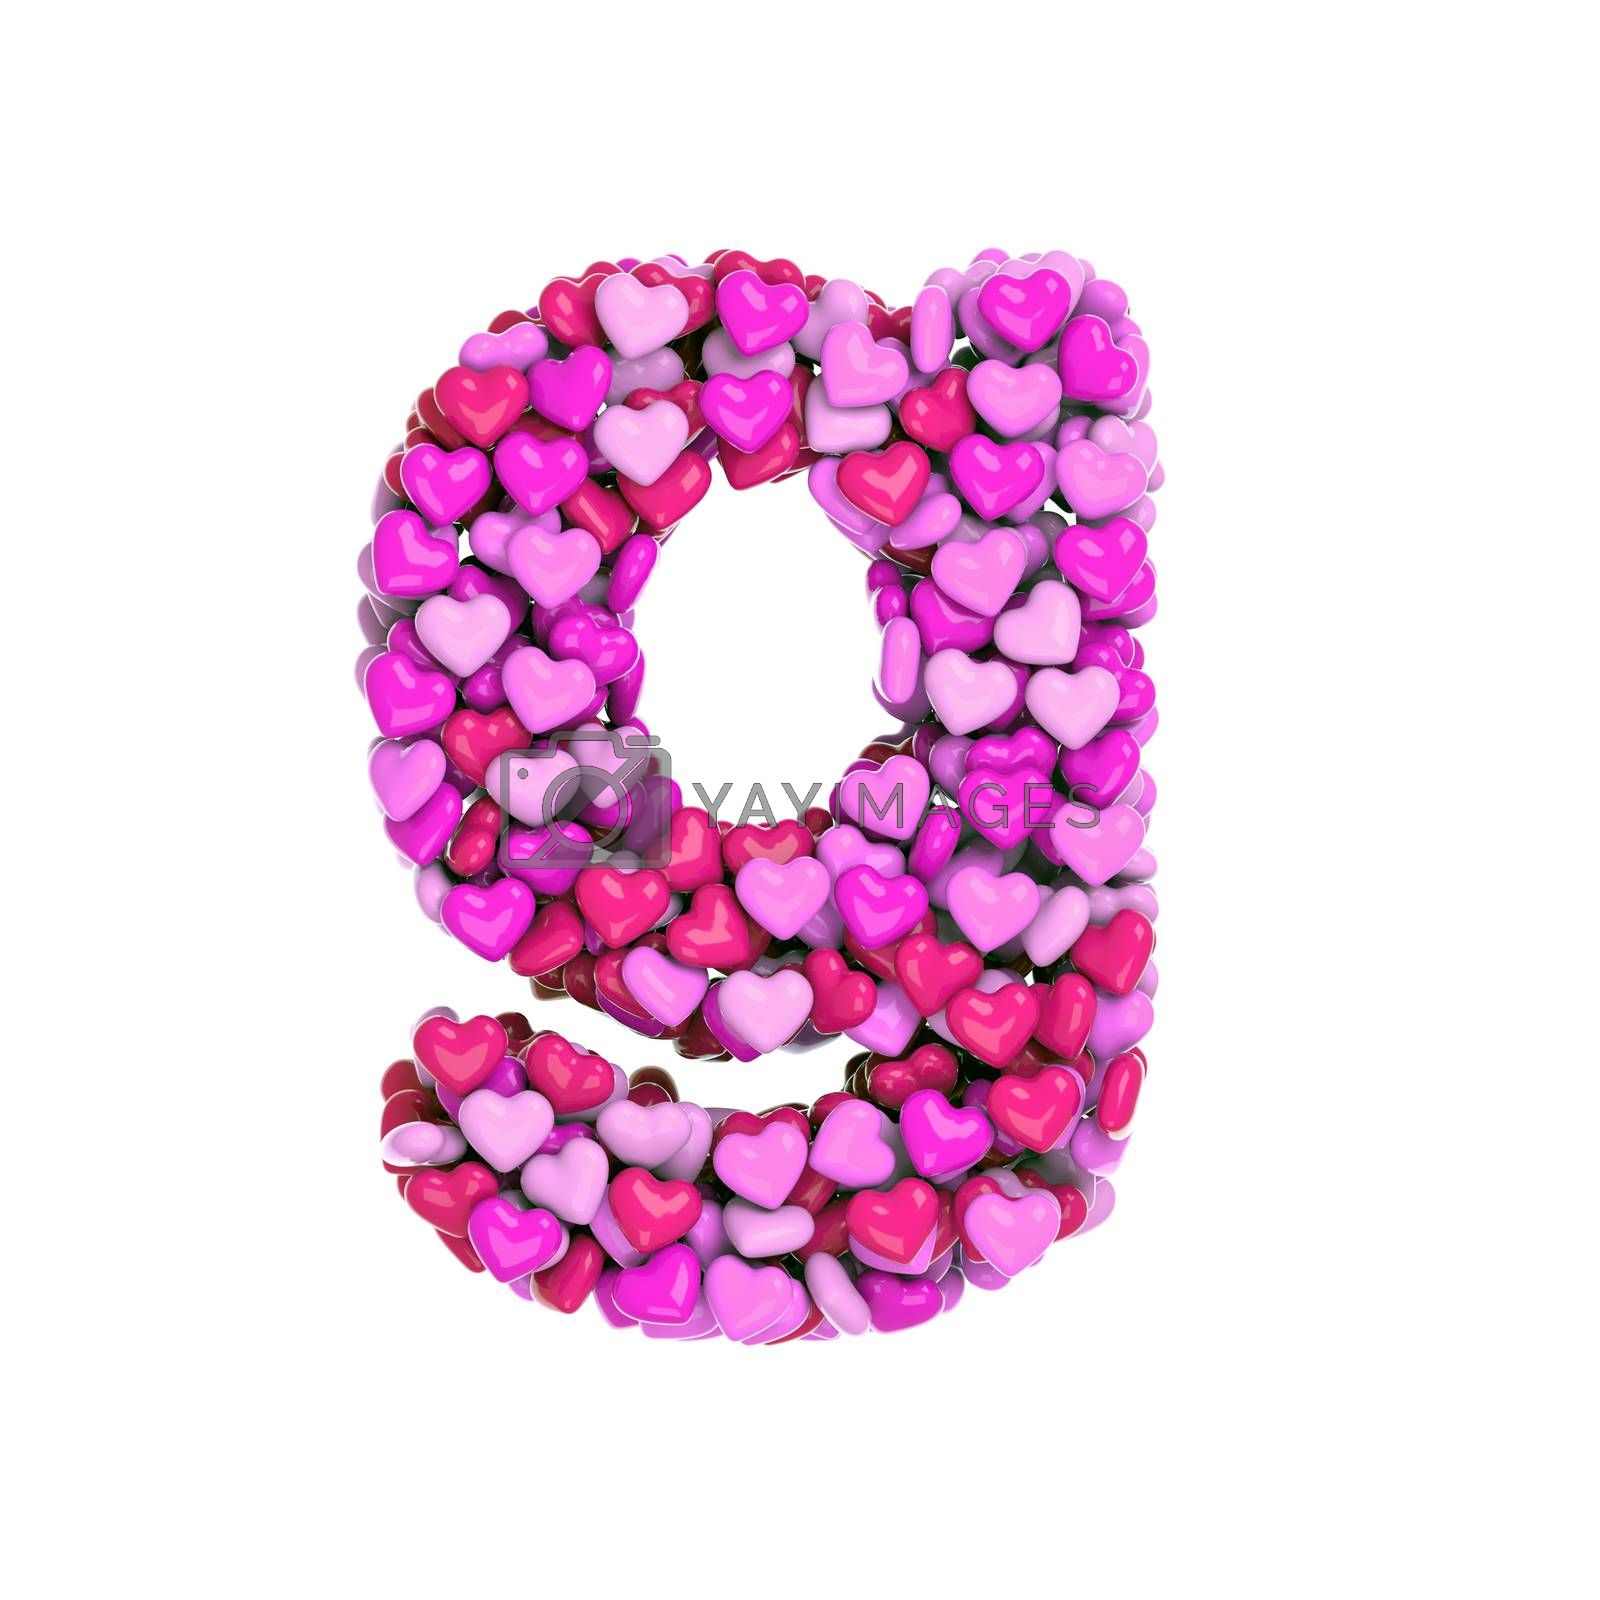 Valentine letter G - Lowercase 3d pink hearts font - Love, passion or wedding concept by chrisroll